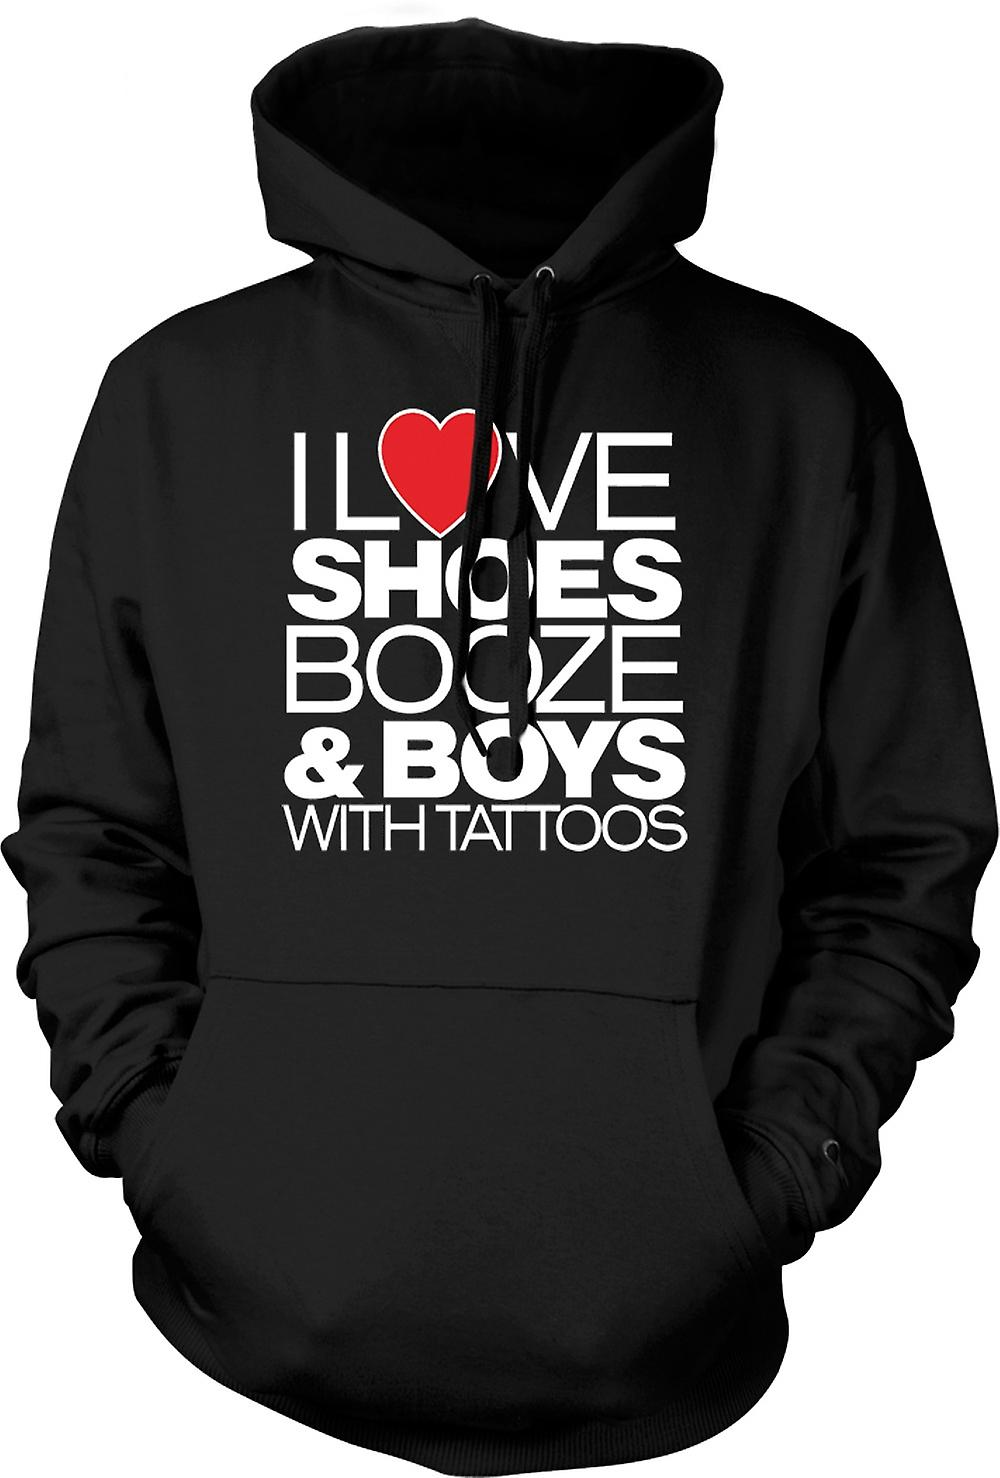 Mens Hoodie - I Love Shoes Booze And Boys With Tattoos - Quote